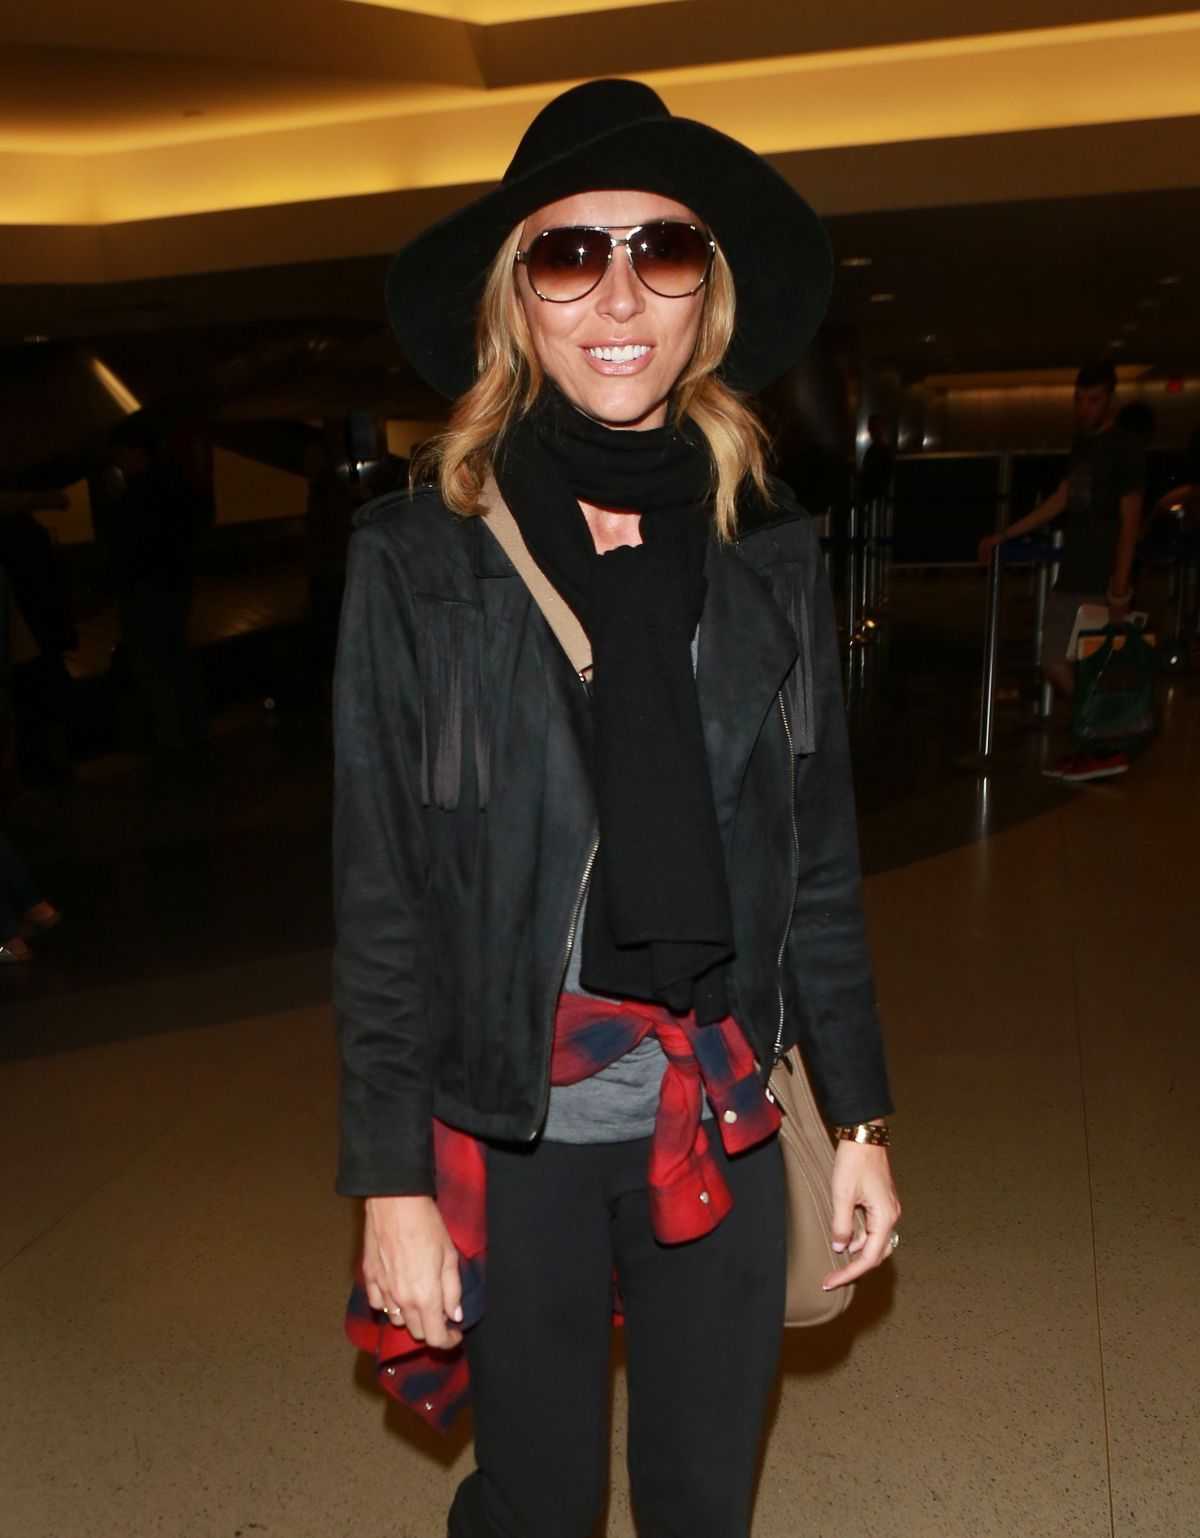 GIULIANA RANCIC at LAX Airport in Los Angeles 01/03/2016